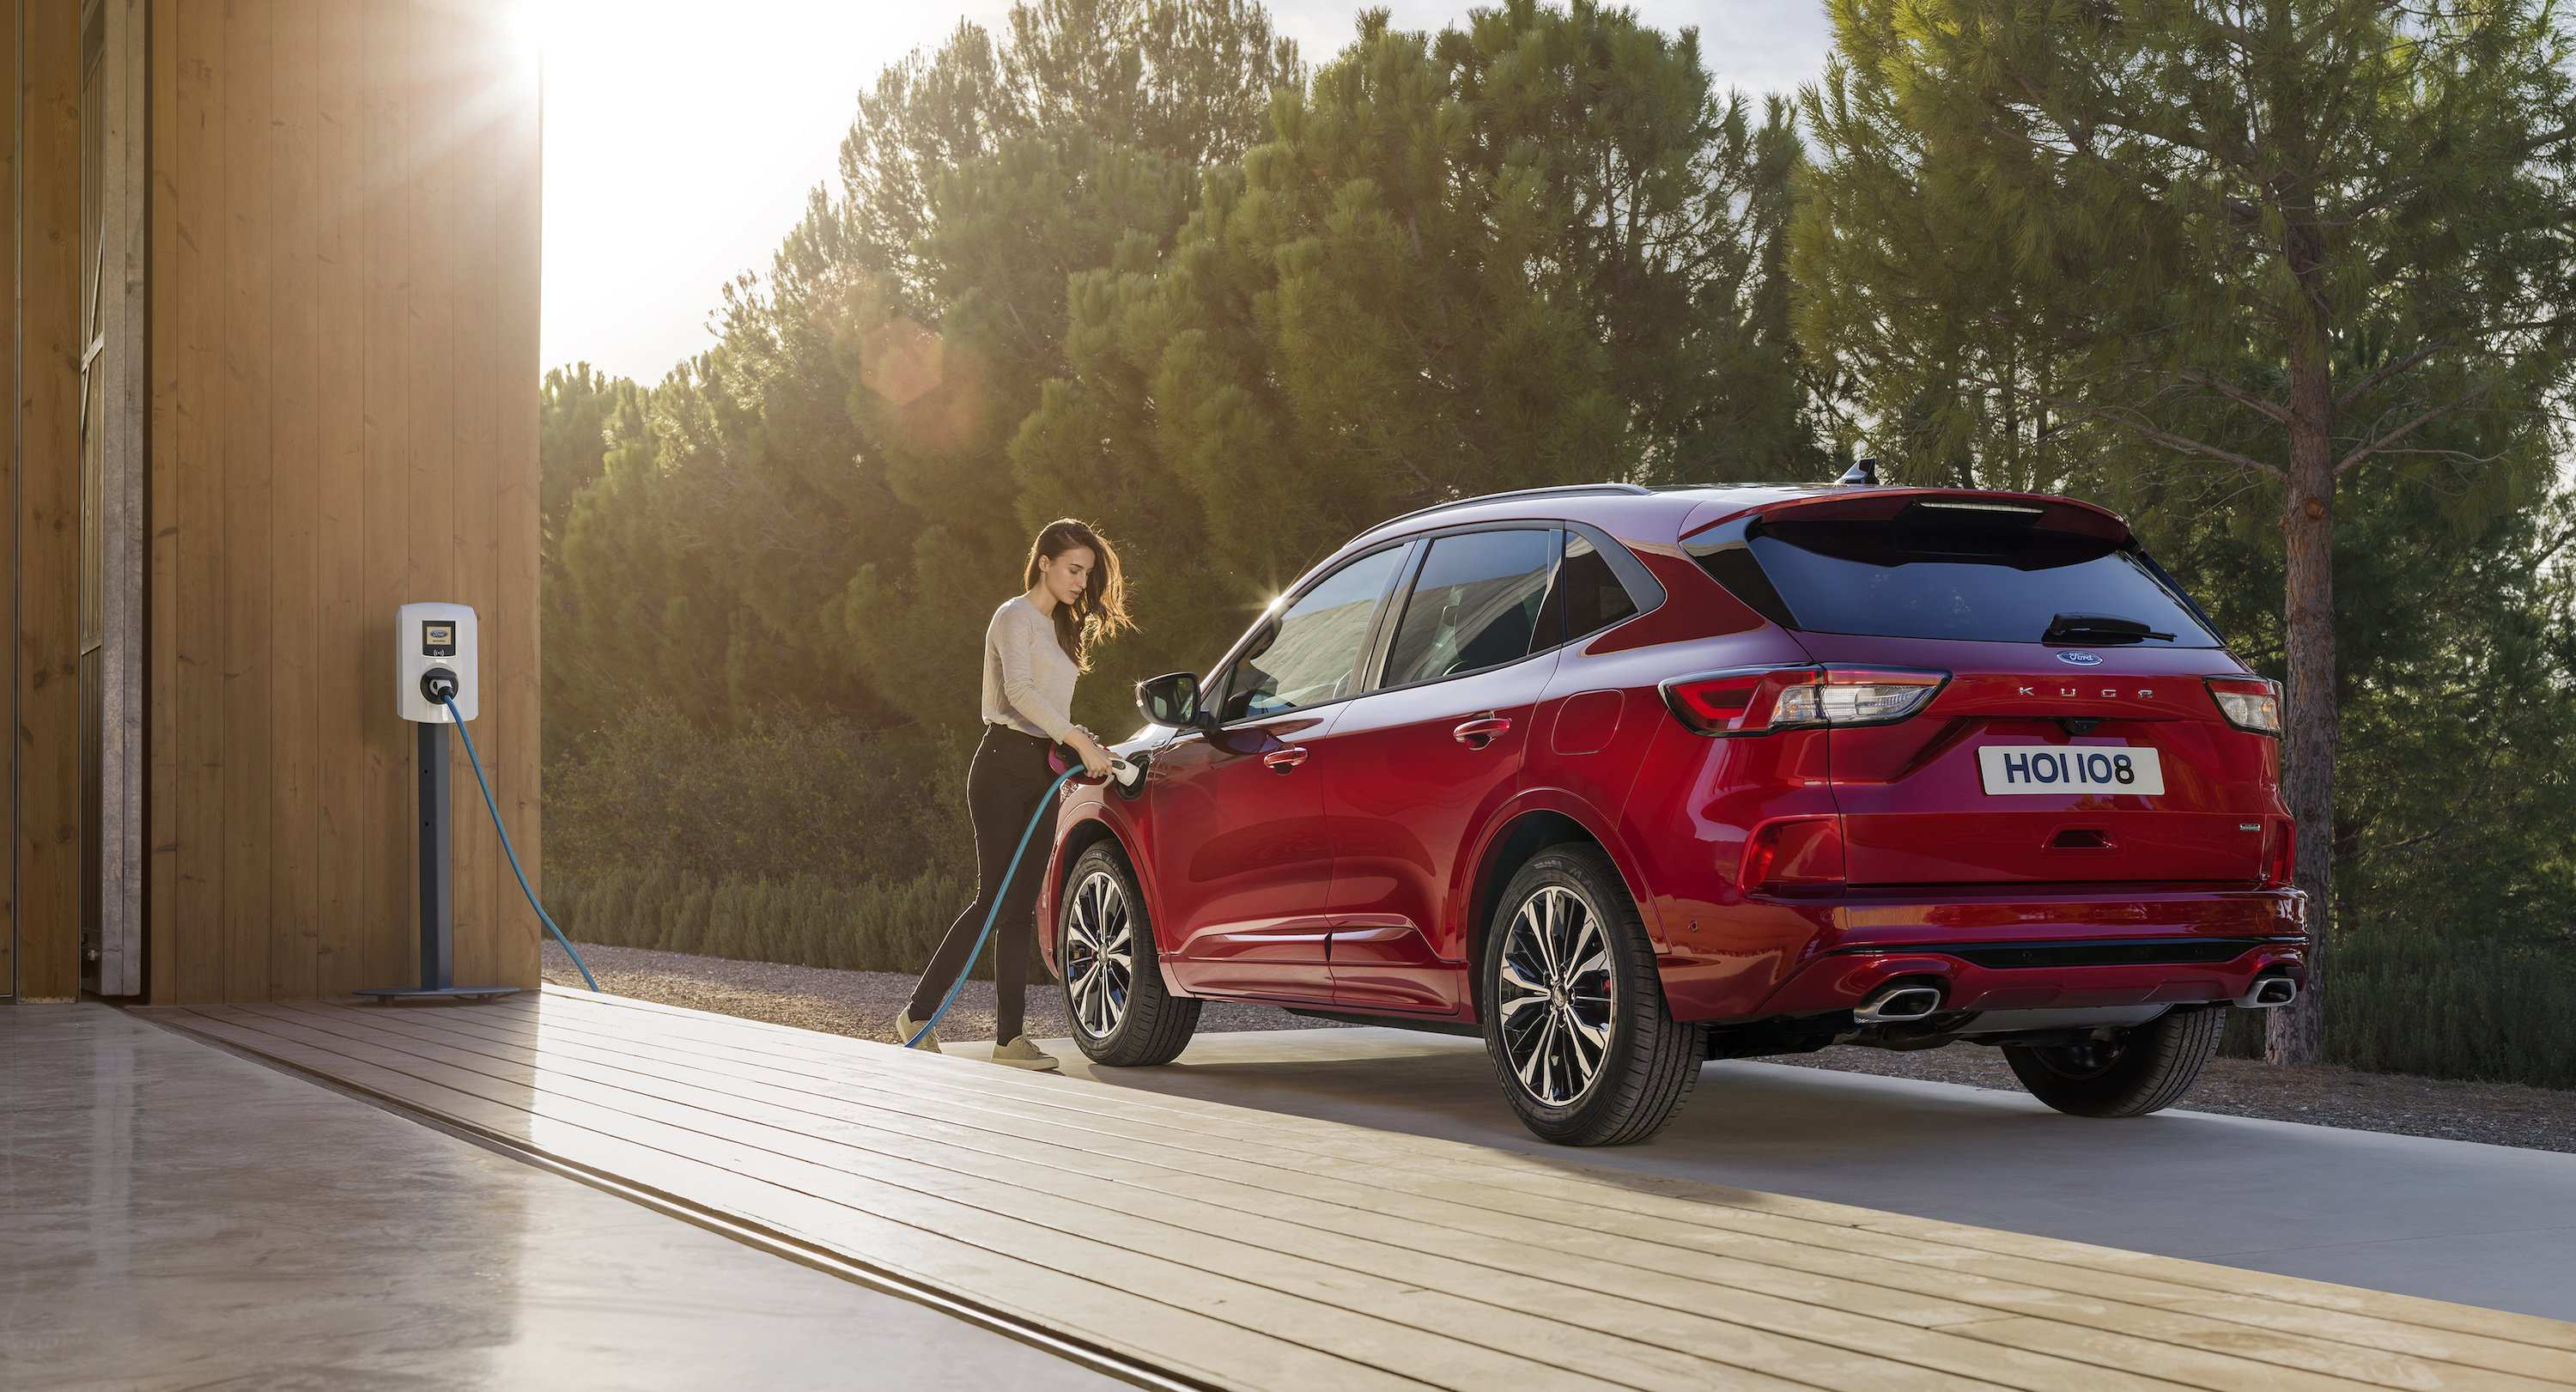 97 Best Review Ford Kuga 2020 Price for Ford Kuga 2020